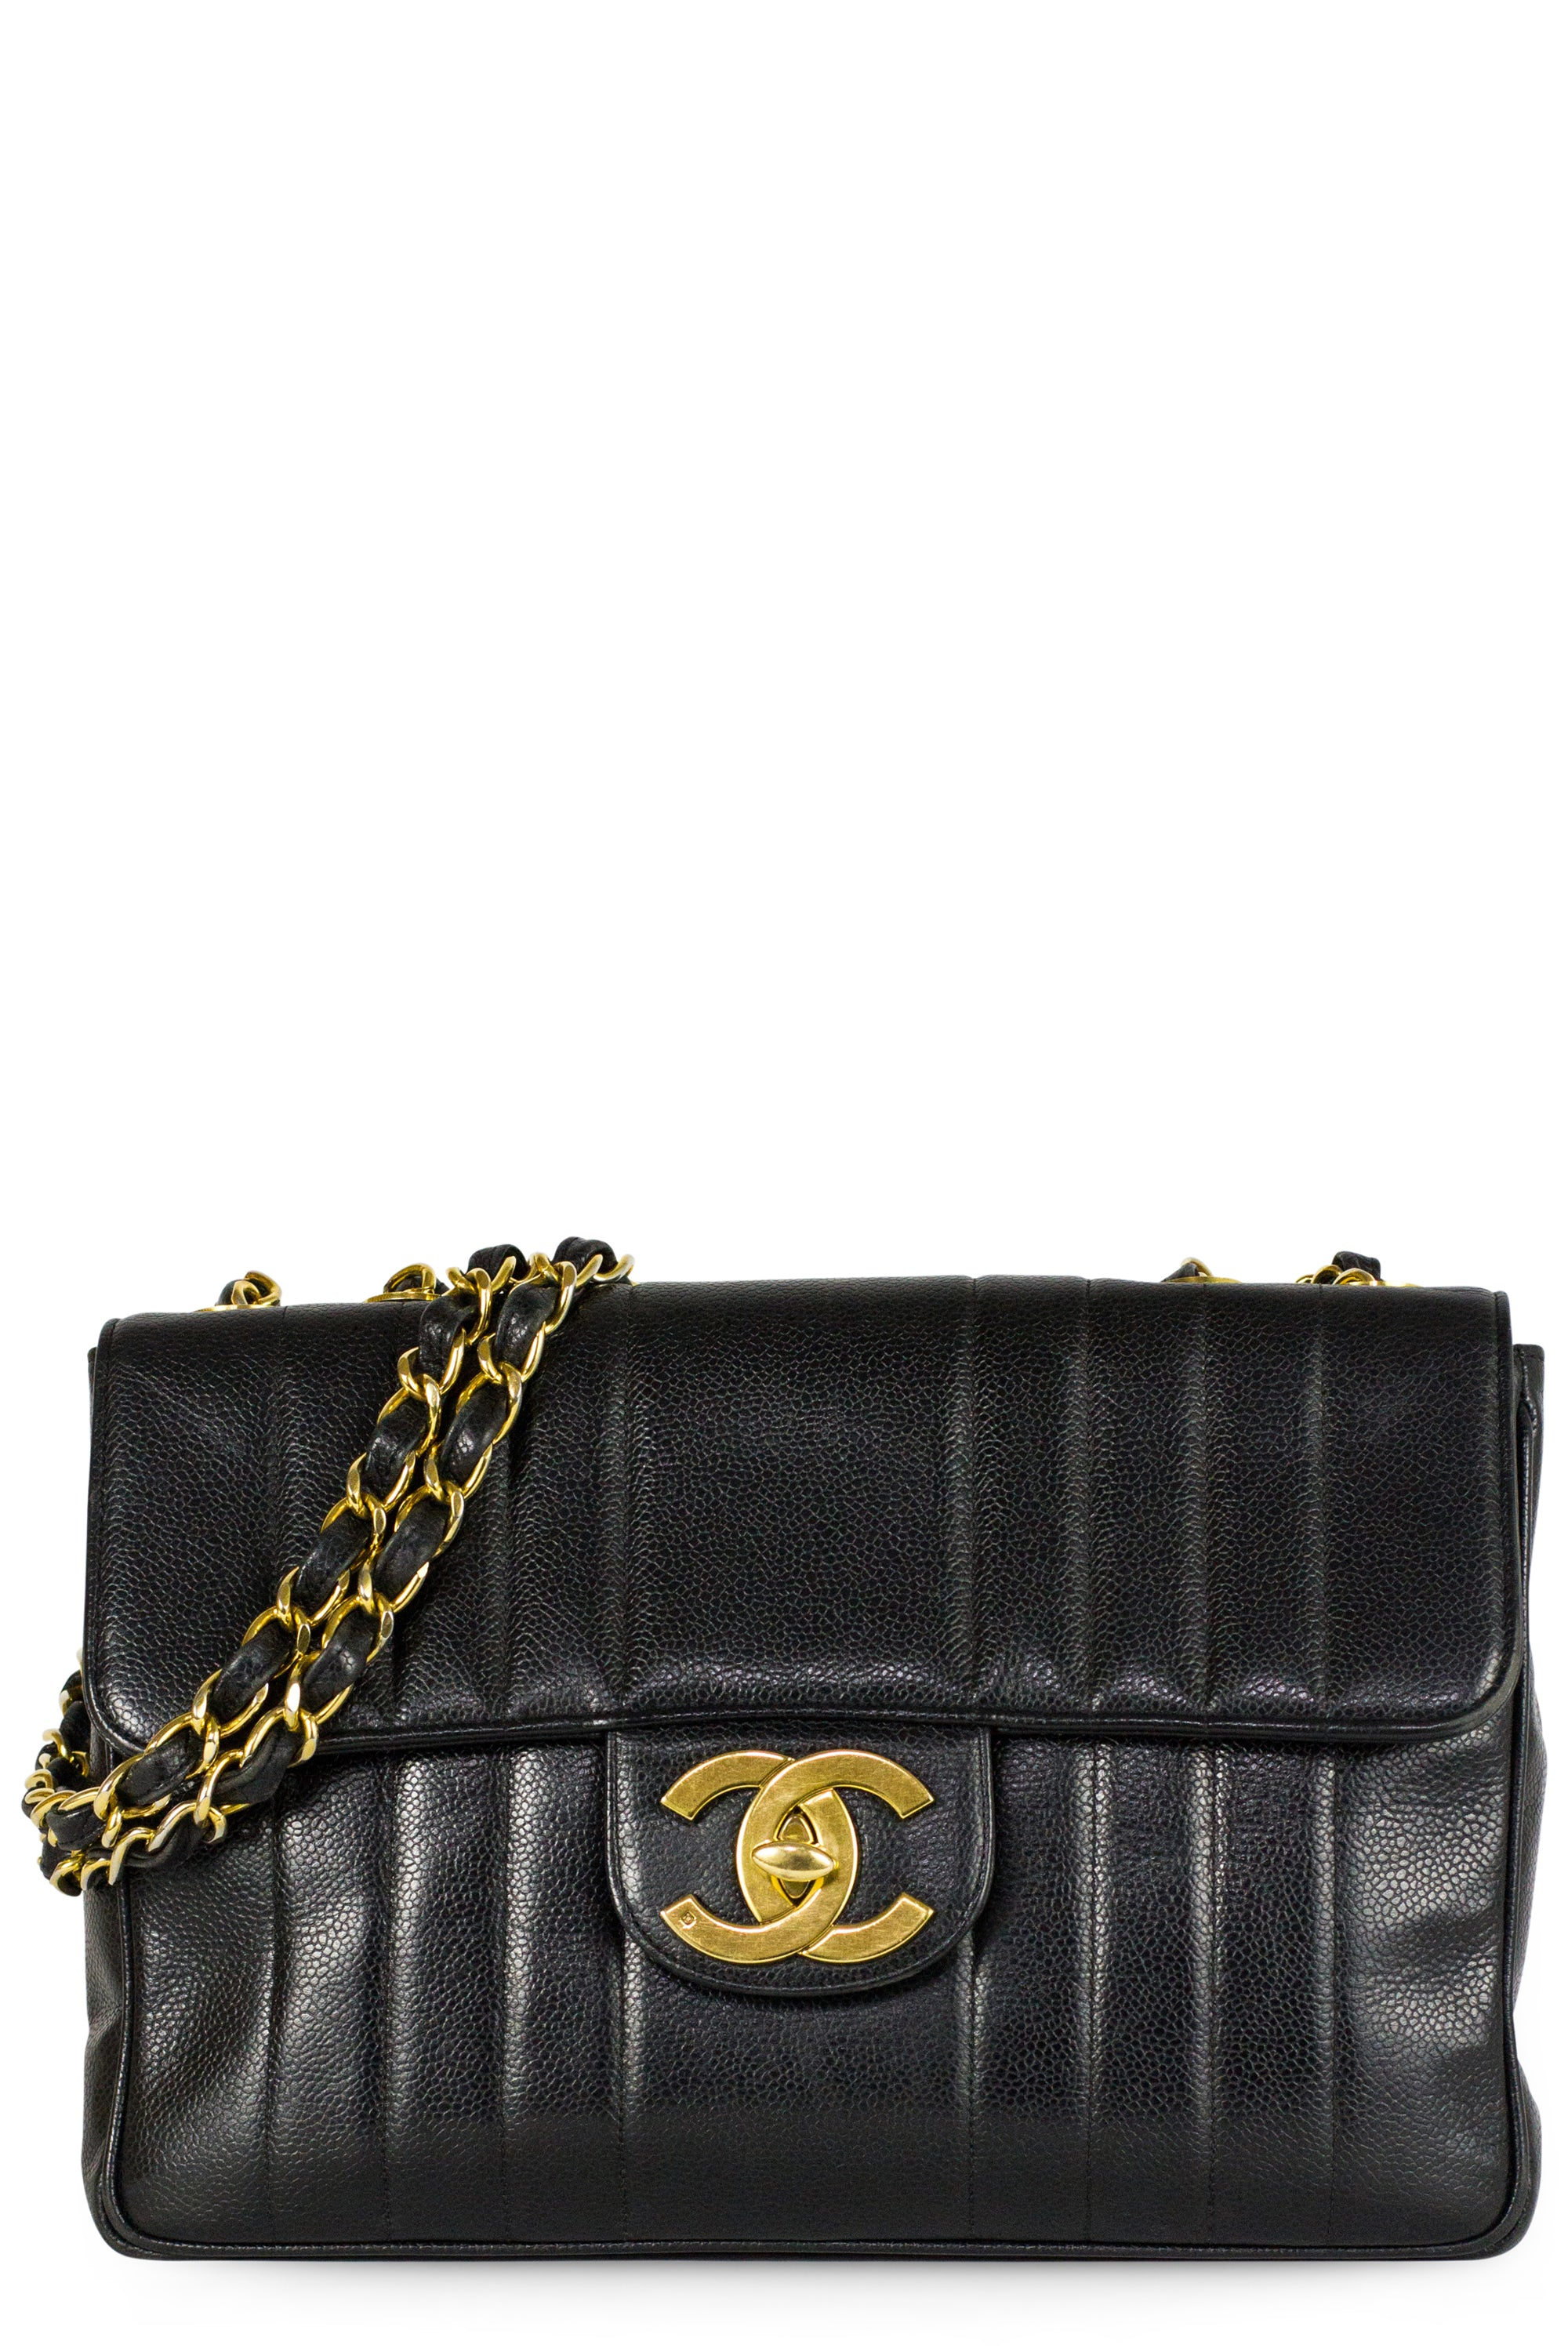 Vintage Chanel Jumbo CC Caviar Leather Bag